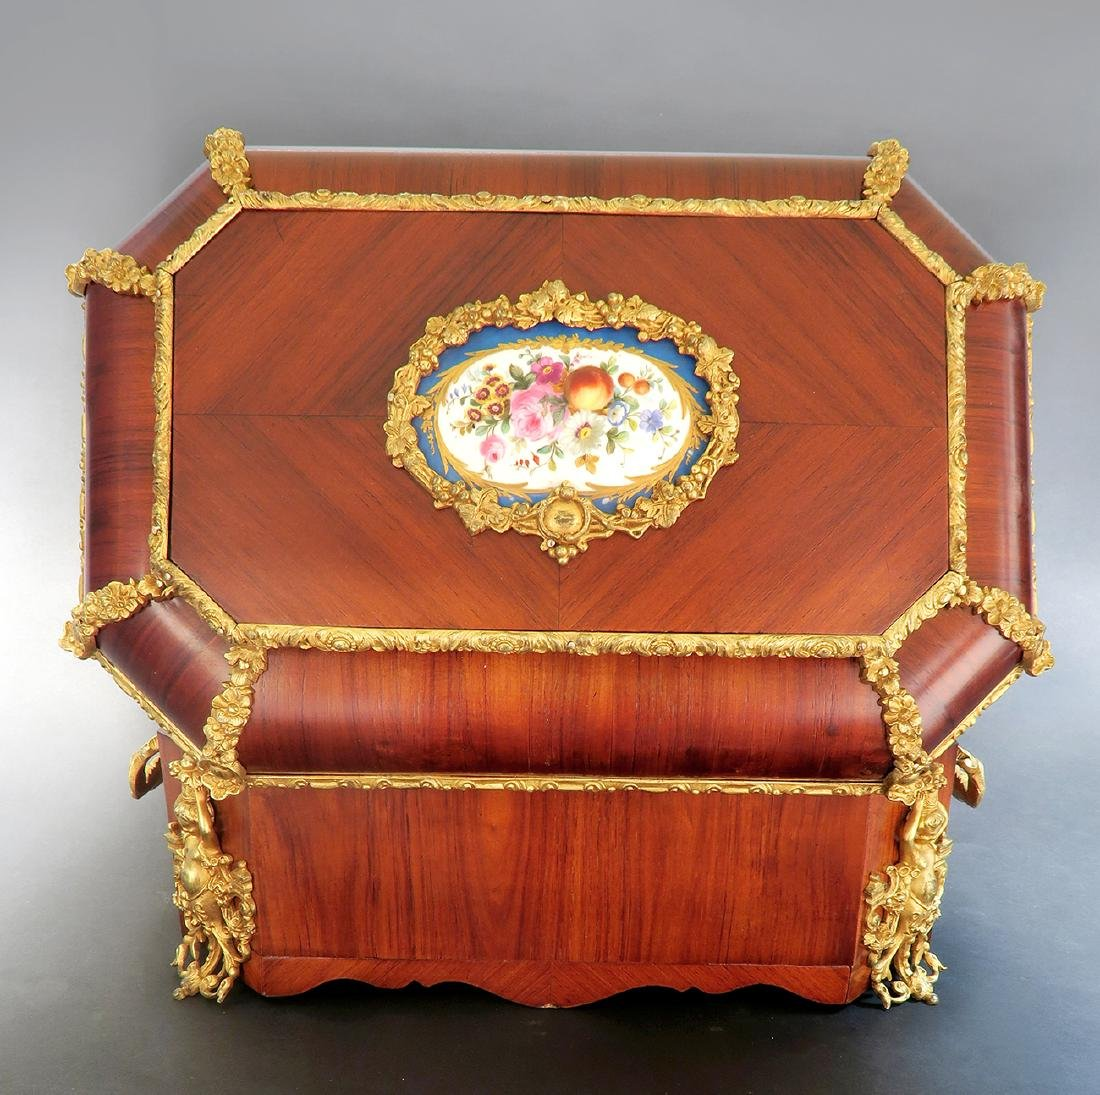 19th C. Napoleon III Tulip-wood Bronze Sevres Large Box - 6